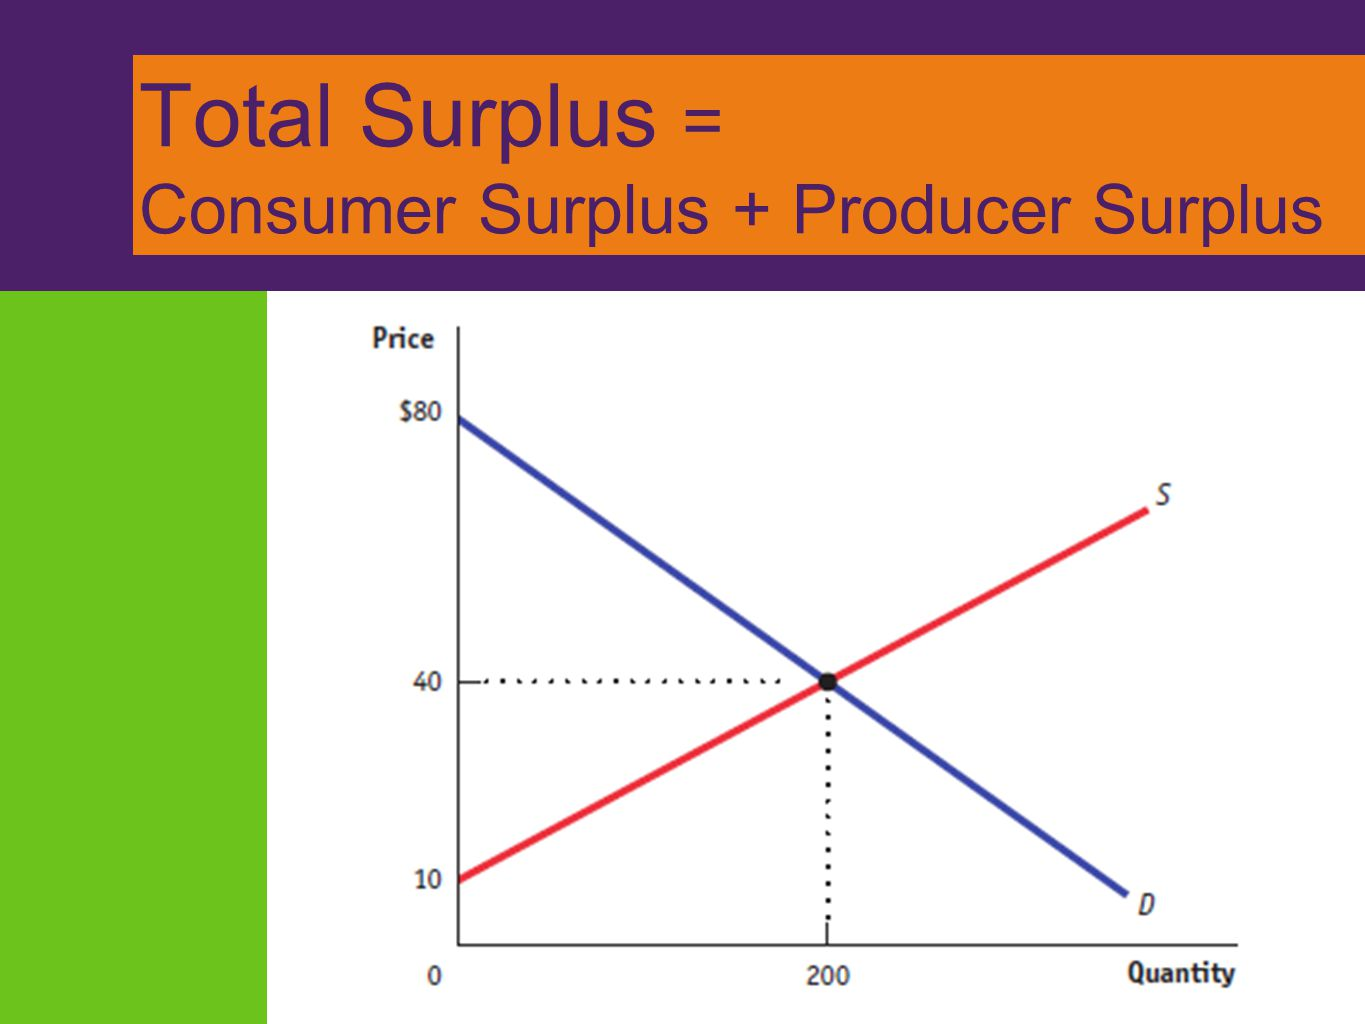 Total Surplus = Consumer Surplus + Producer Surplus